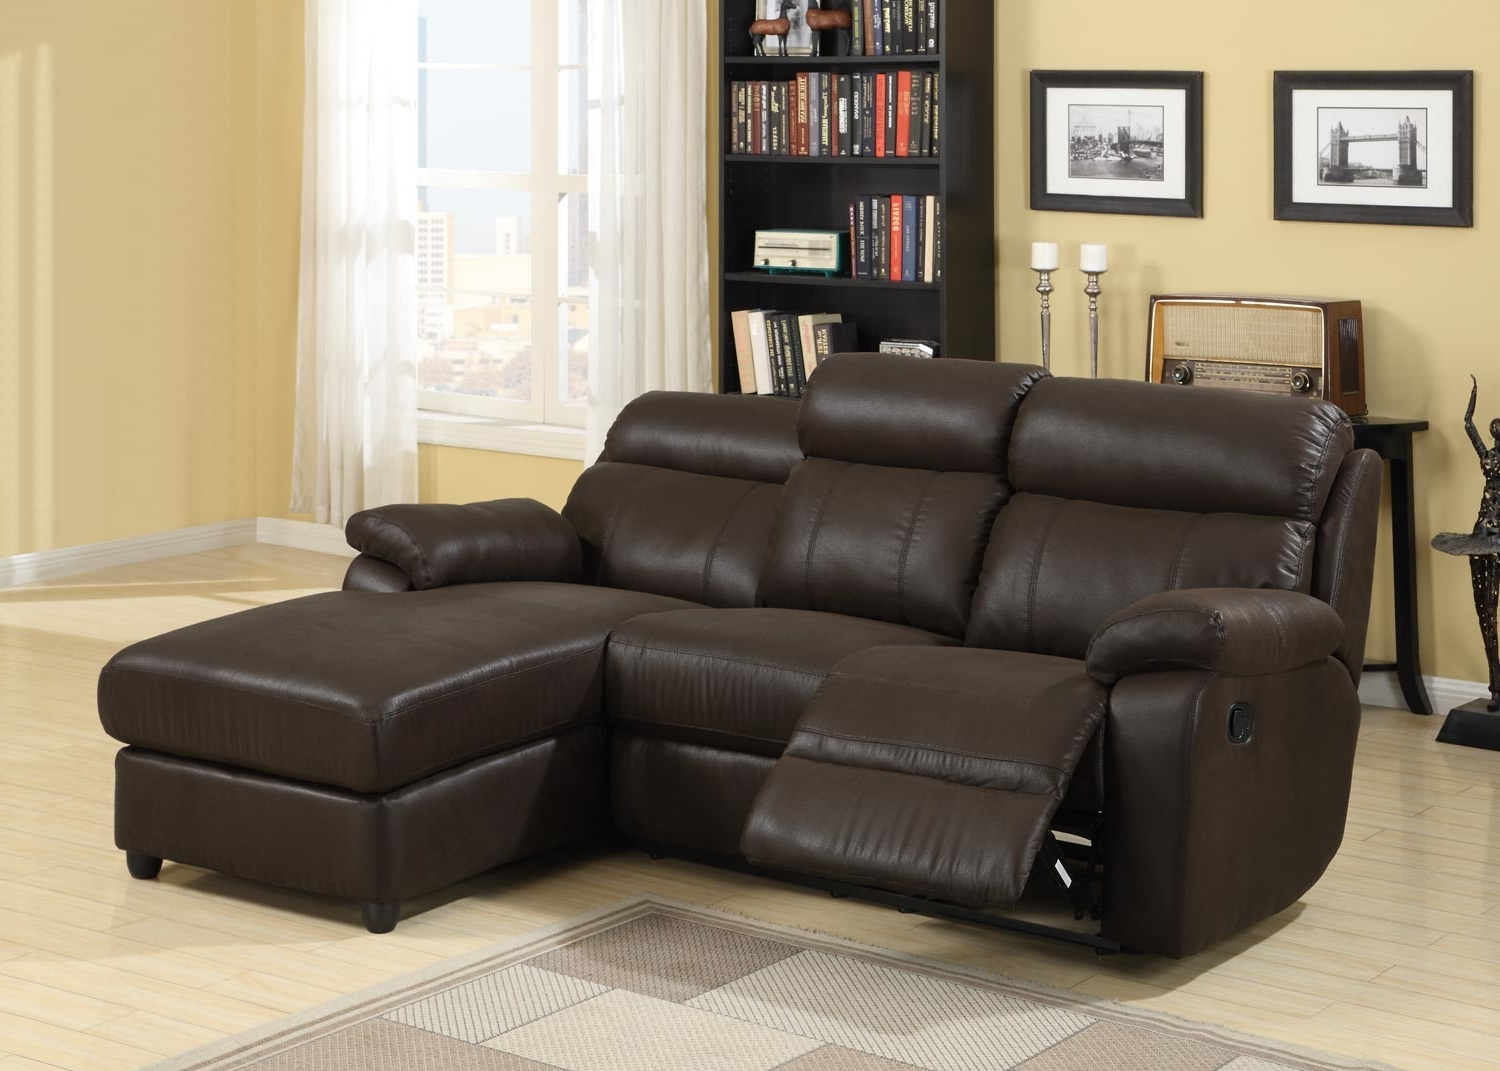 Well Known Sectional Sofas With Recliner And Chaise Lounge With Regard To Ethan Allen Sectional Sofas Natuzzi Leather Reclining Sectional (View 3 of 15)